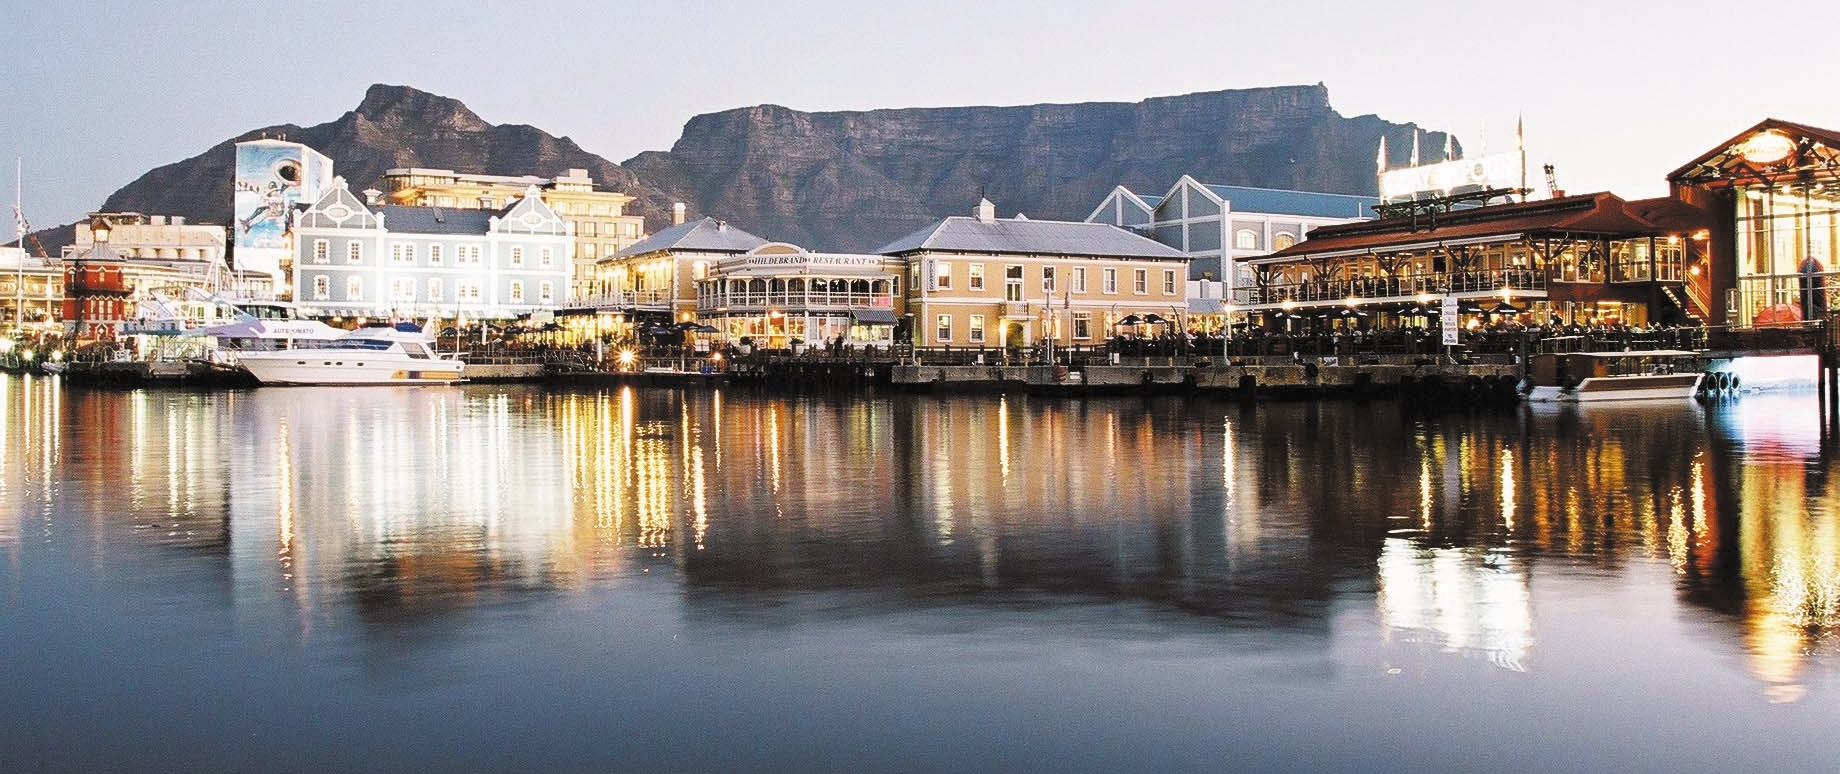 Act Now To Avert The Water Crisis In Cape Town: #SaveLikeALocal